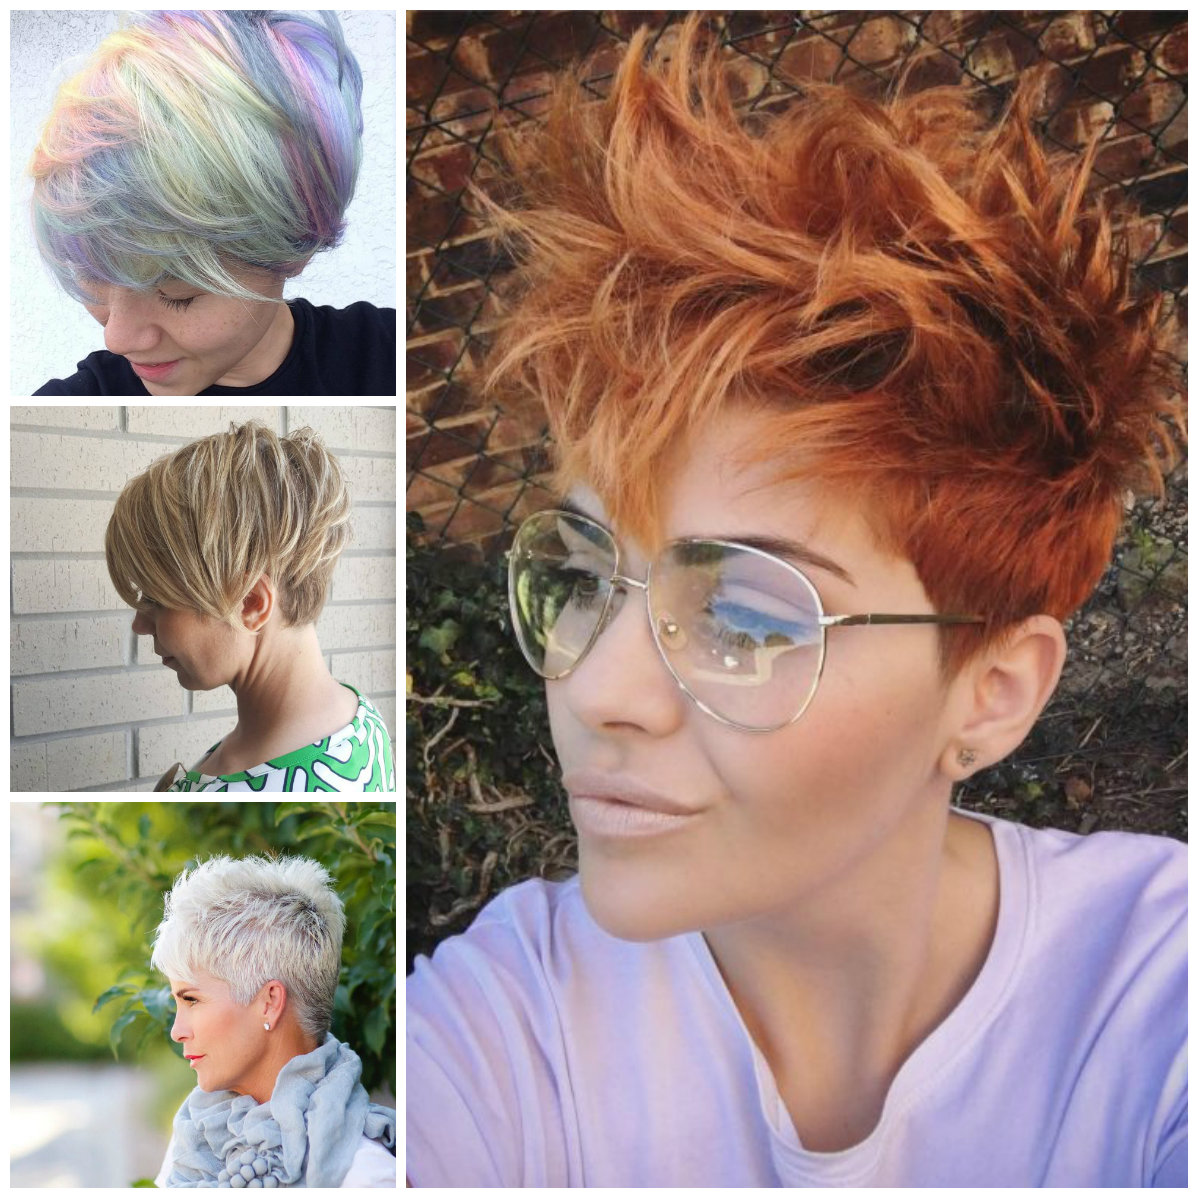 Trendy Pixie Haircuts for 2022